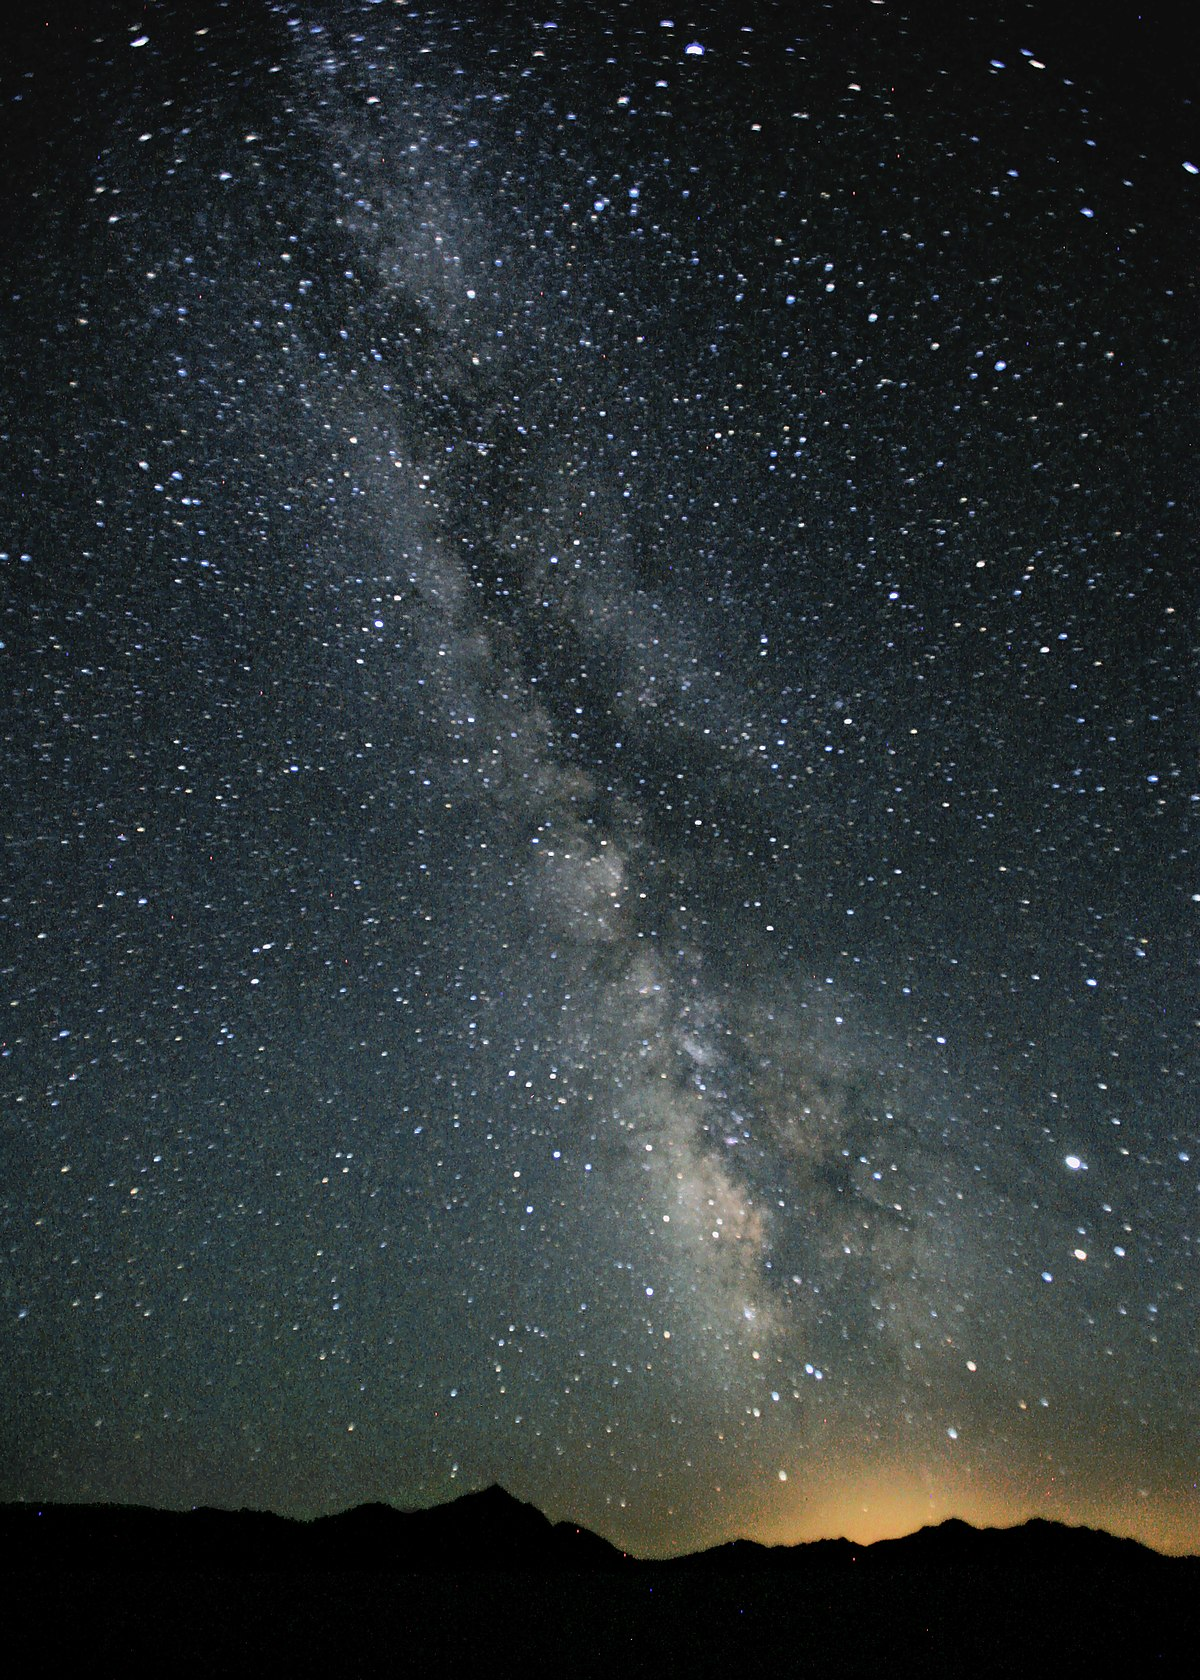 Milky way photo 29